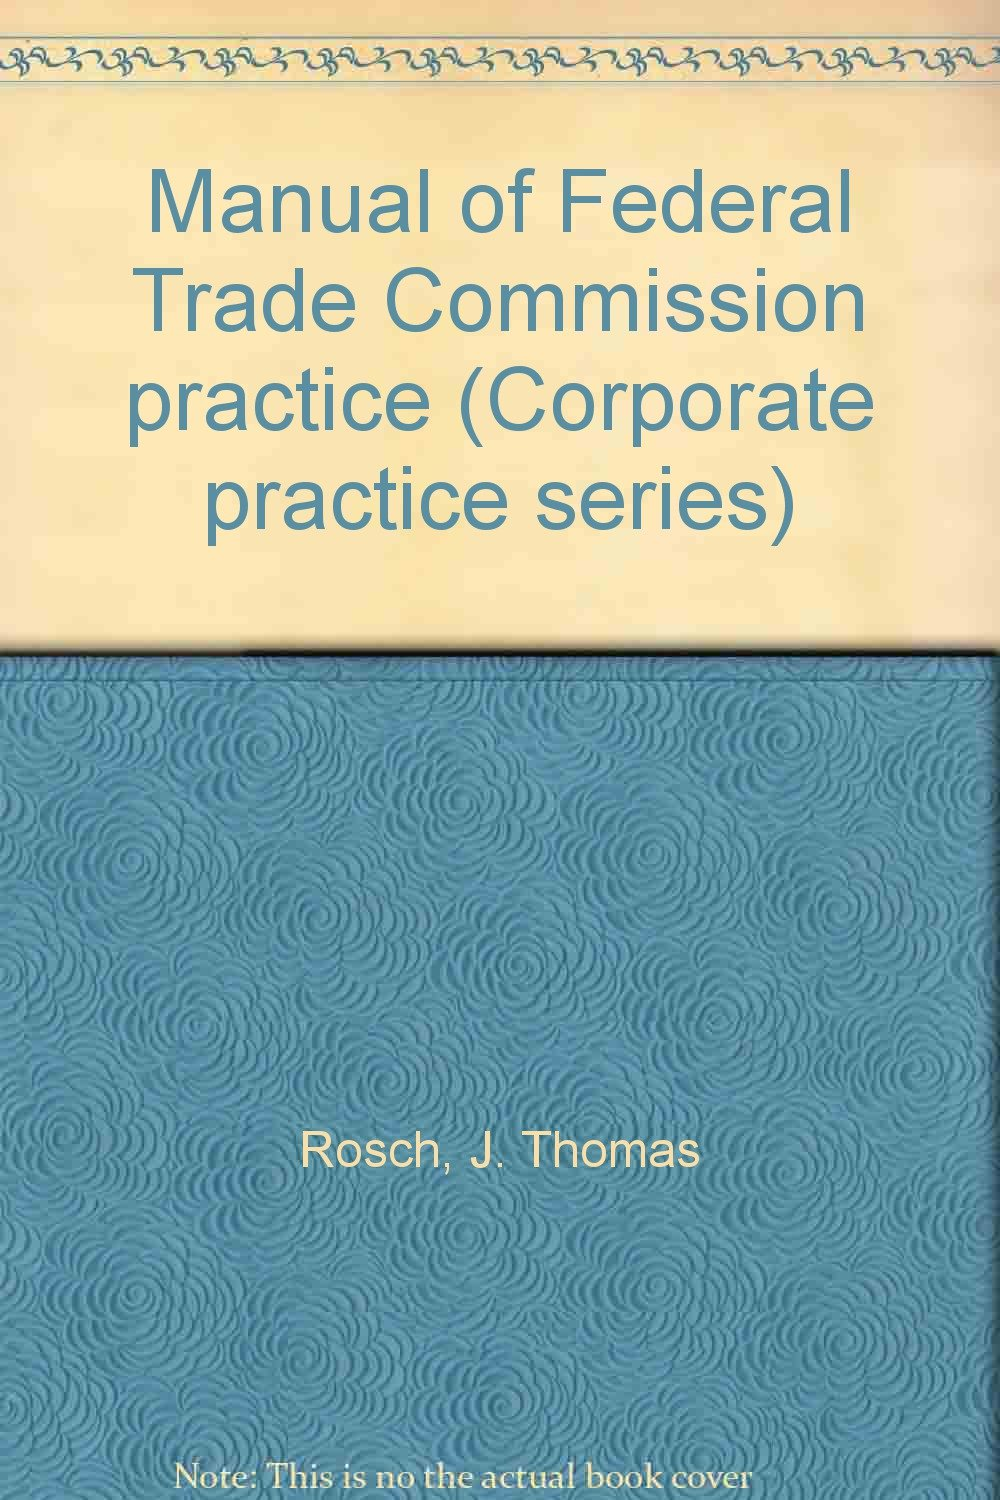 Manual of Federal Trade Commission practice (Corporate practice series): J.  Thomas Rosch: 9781558714397: Amazon.com: Books